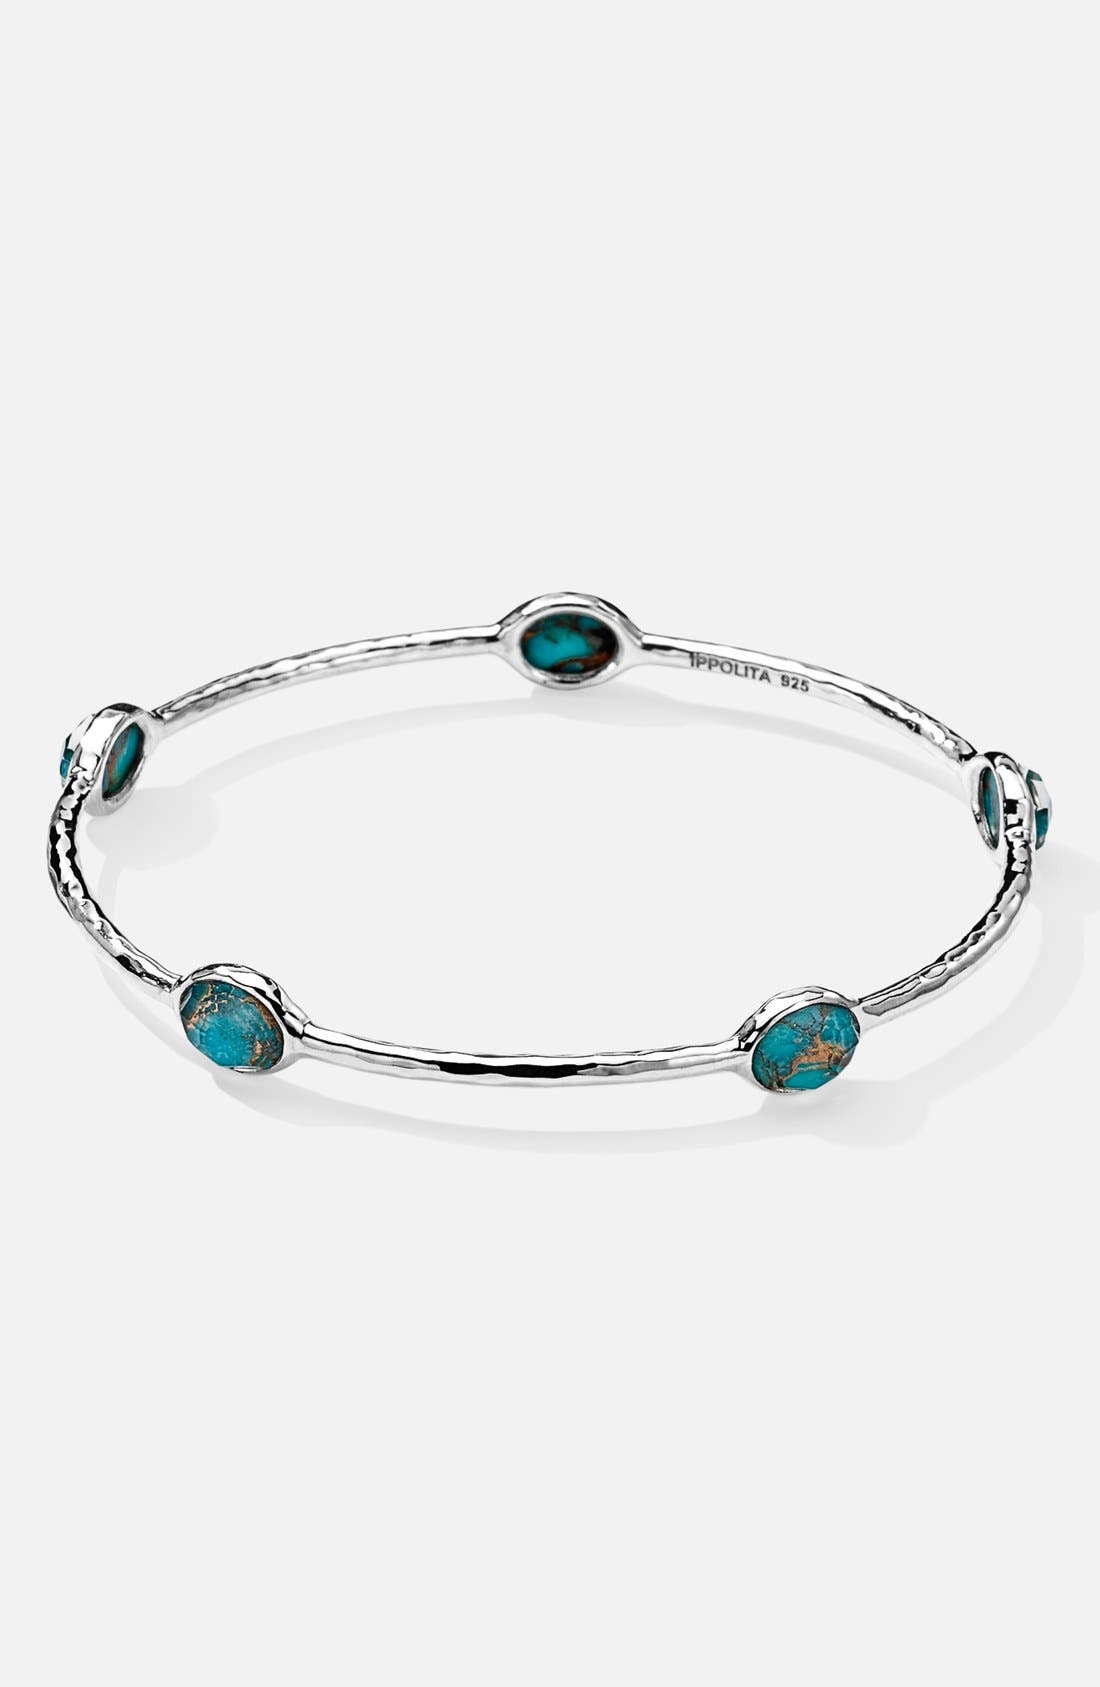 'Rock Candy' 5-Stone Blue Topaz Bangle,                             Main thumbnail 1, color,                             Silver/ Bronze Turquoise